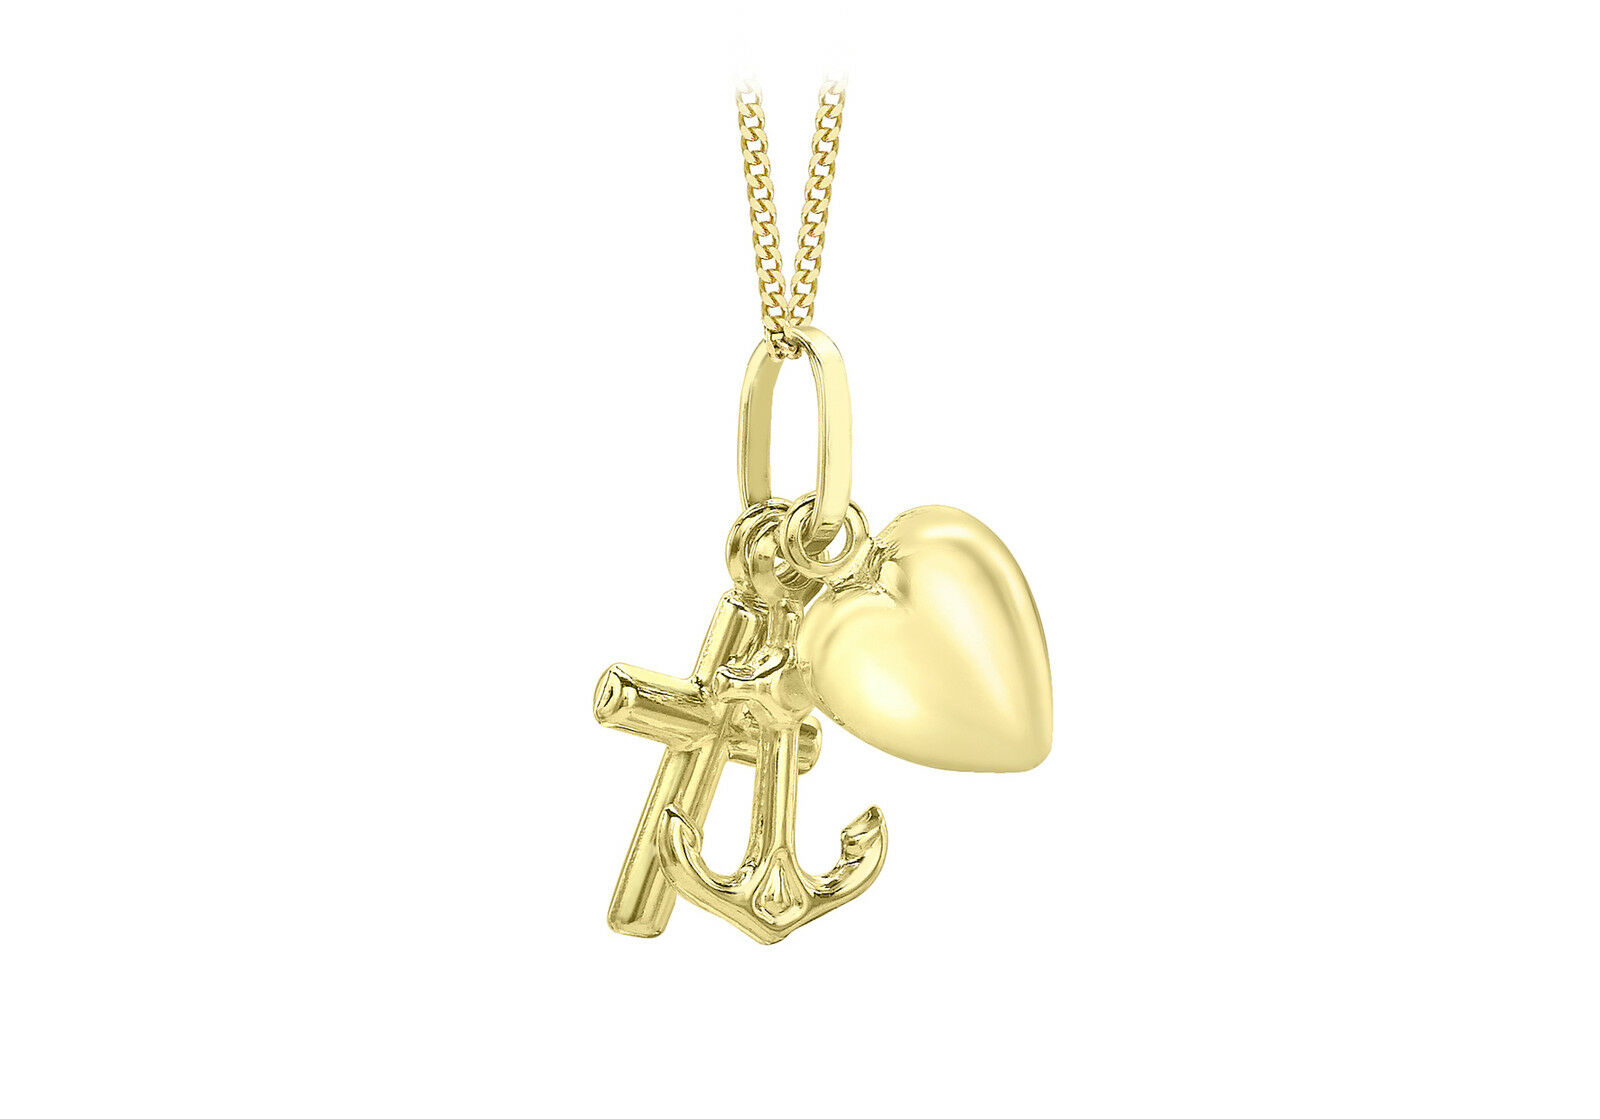 e4410b2f8a9be 18 on Pendant Faith gold Yellow 9ct Hope Box Gift Luxury Inc Chain ...